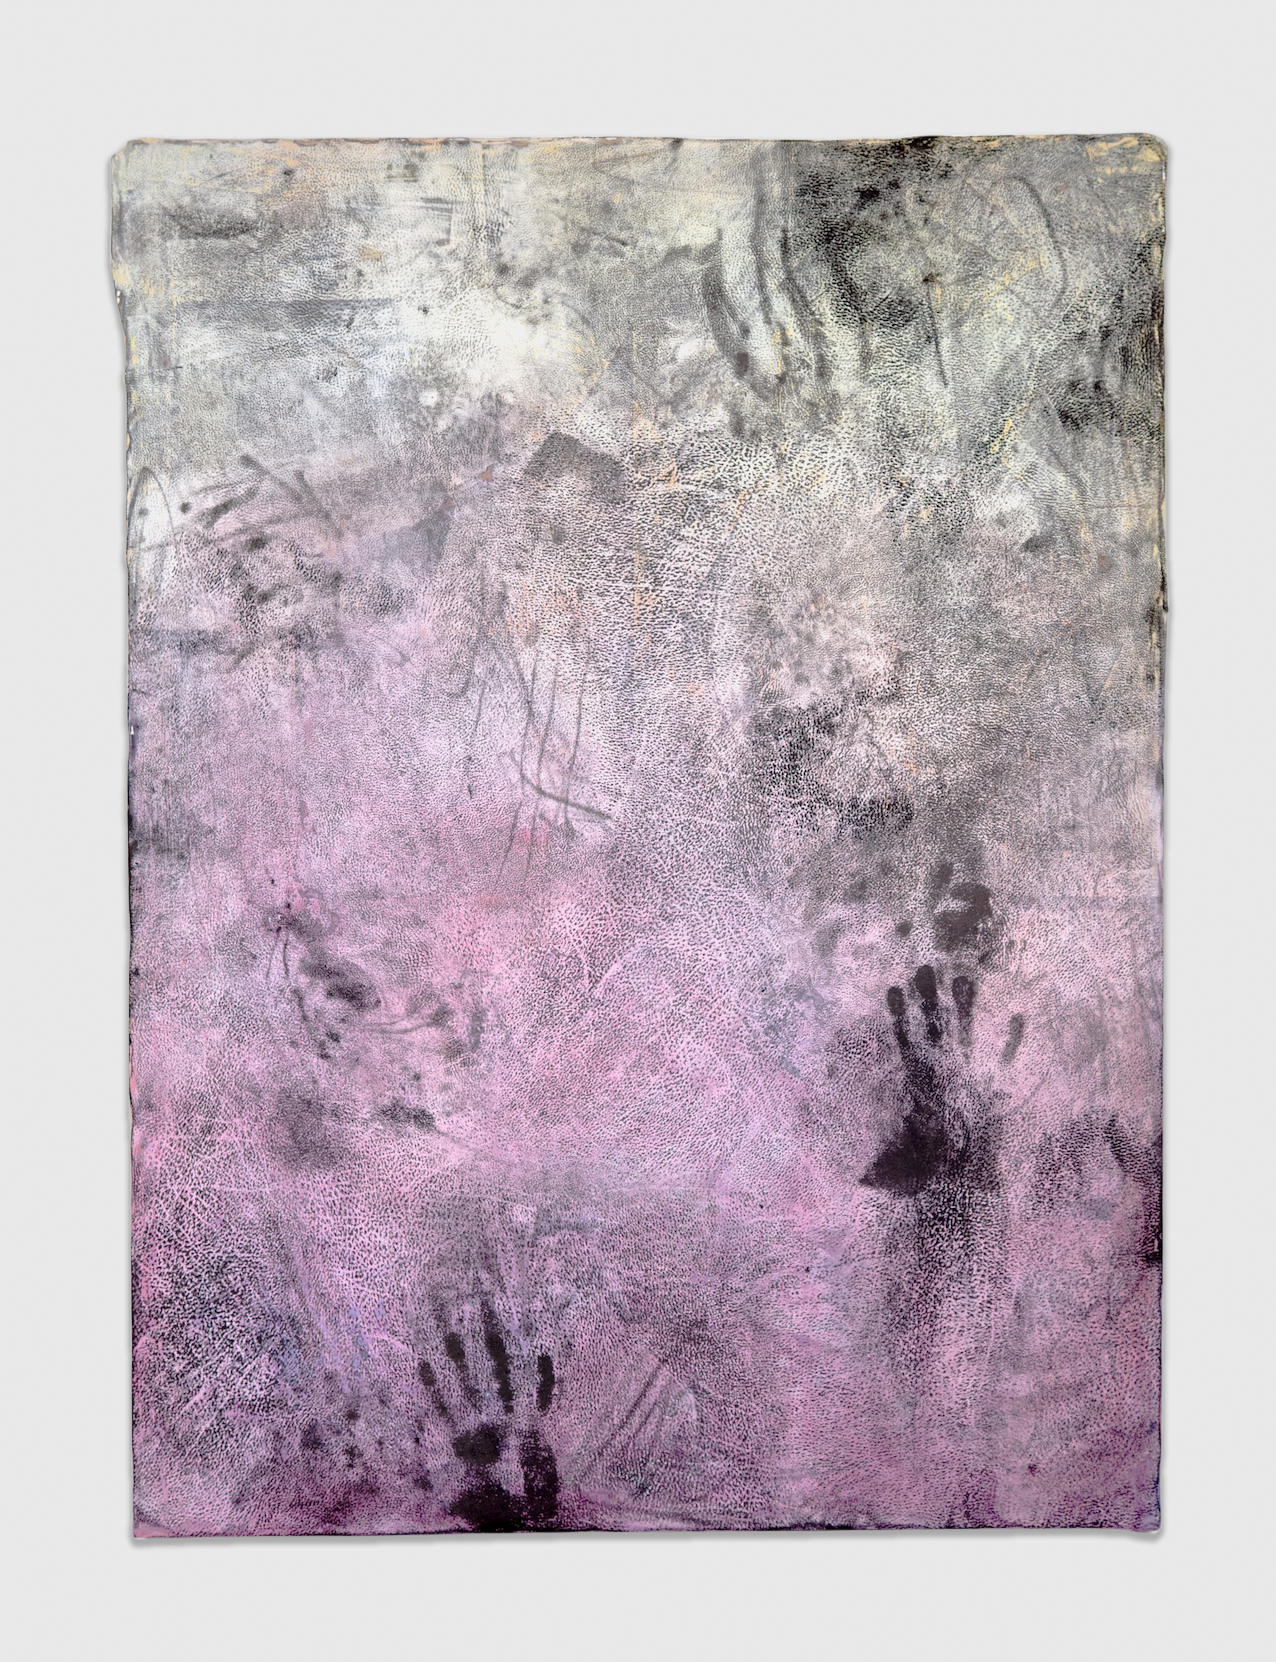 Jay Heikes  Endless  2011 Paper, aluminum, dry pigment, ink, and wood 48 ½h x 36 ½w in JH036